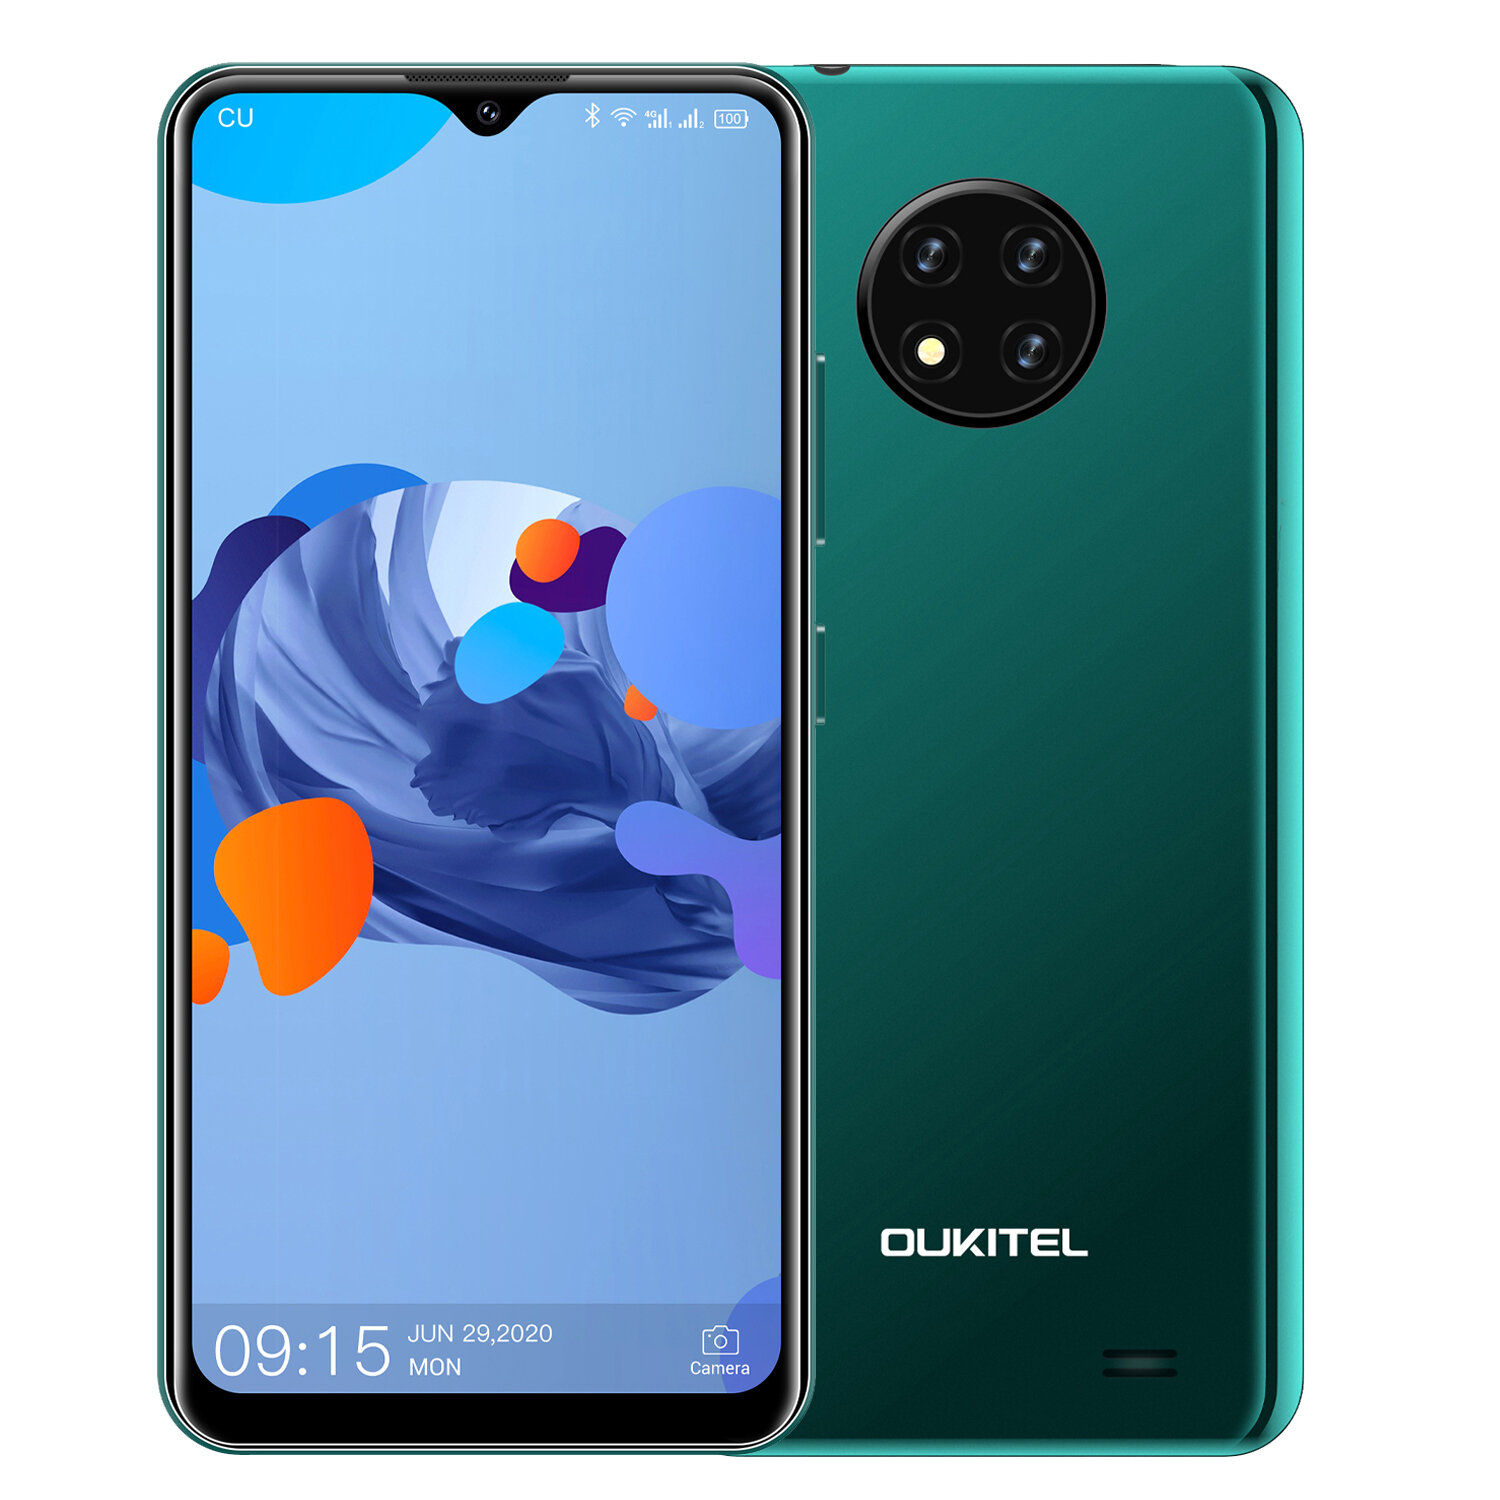 OUKITEL C19 6.49 inch HD+ Android 10 GO 4000mAh 13MP Triple Rear Camera 2GB 16GB MT6737 4G Smartphone - Green